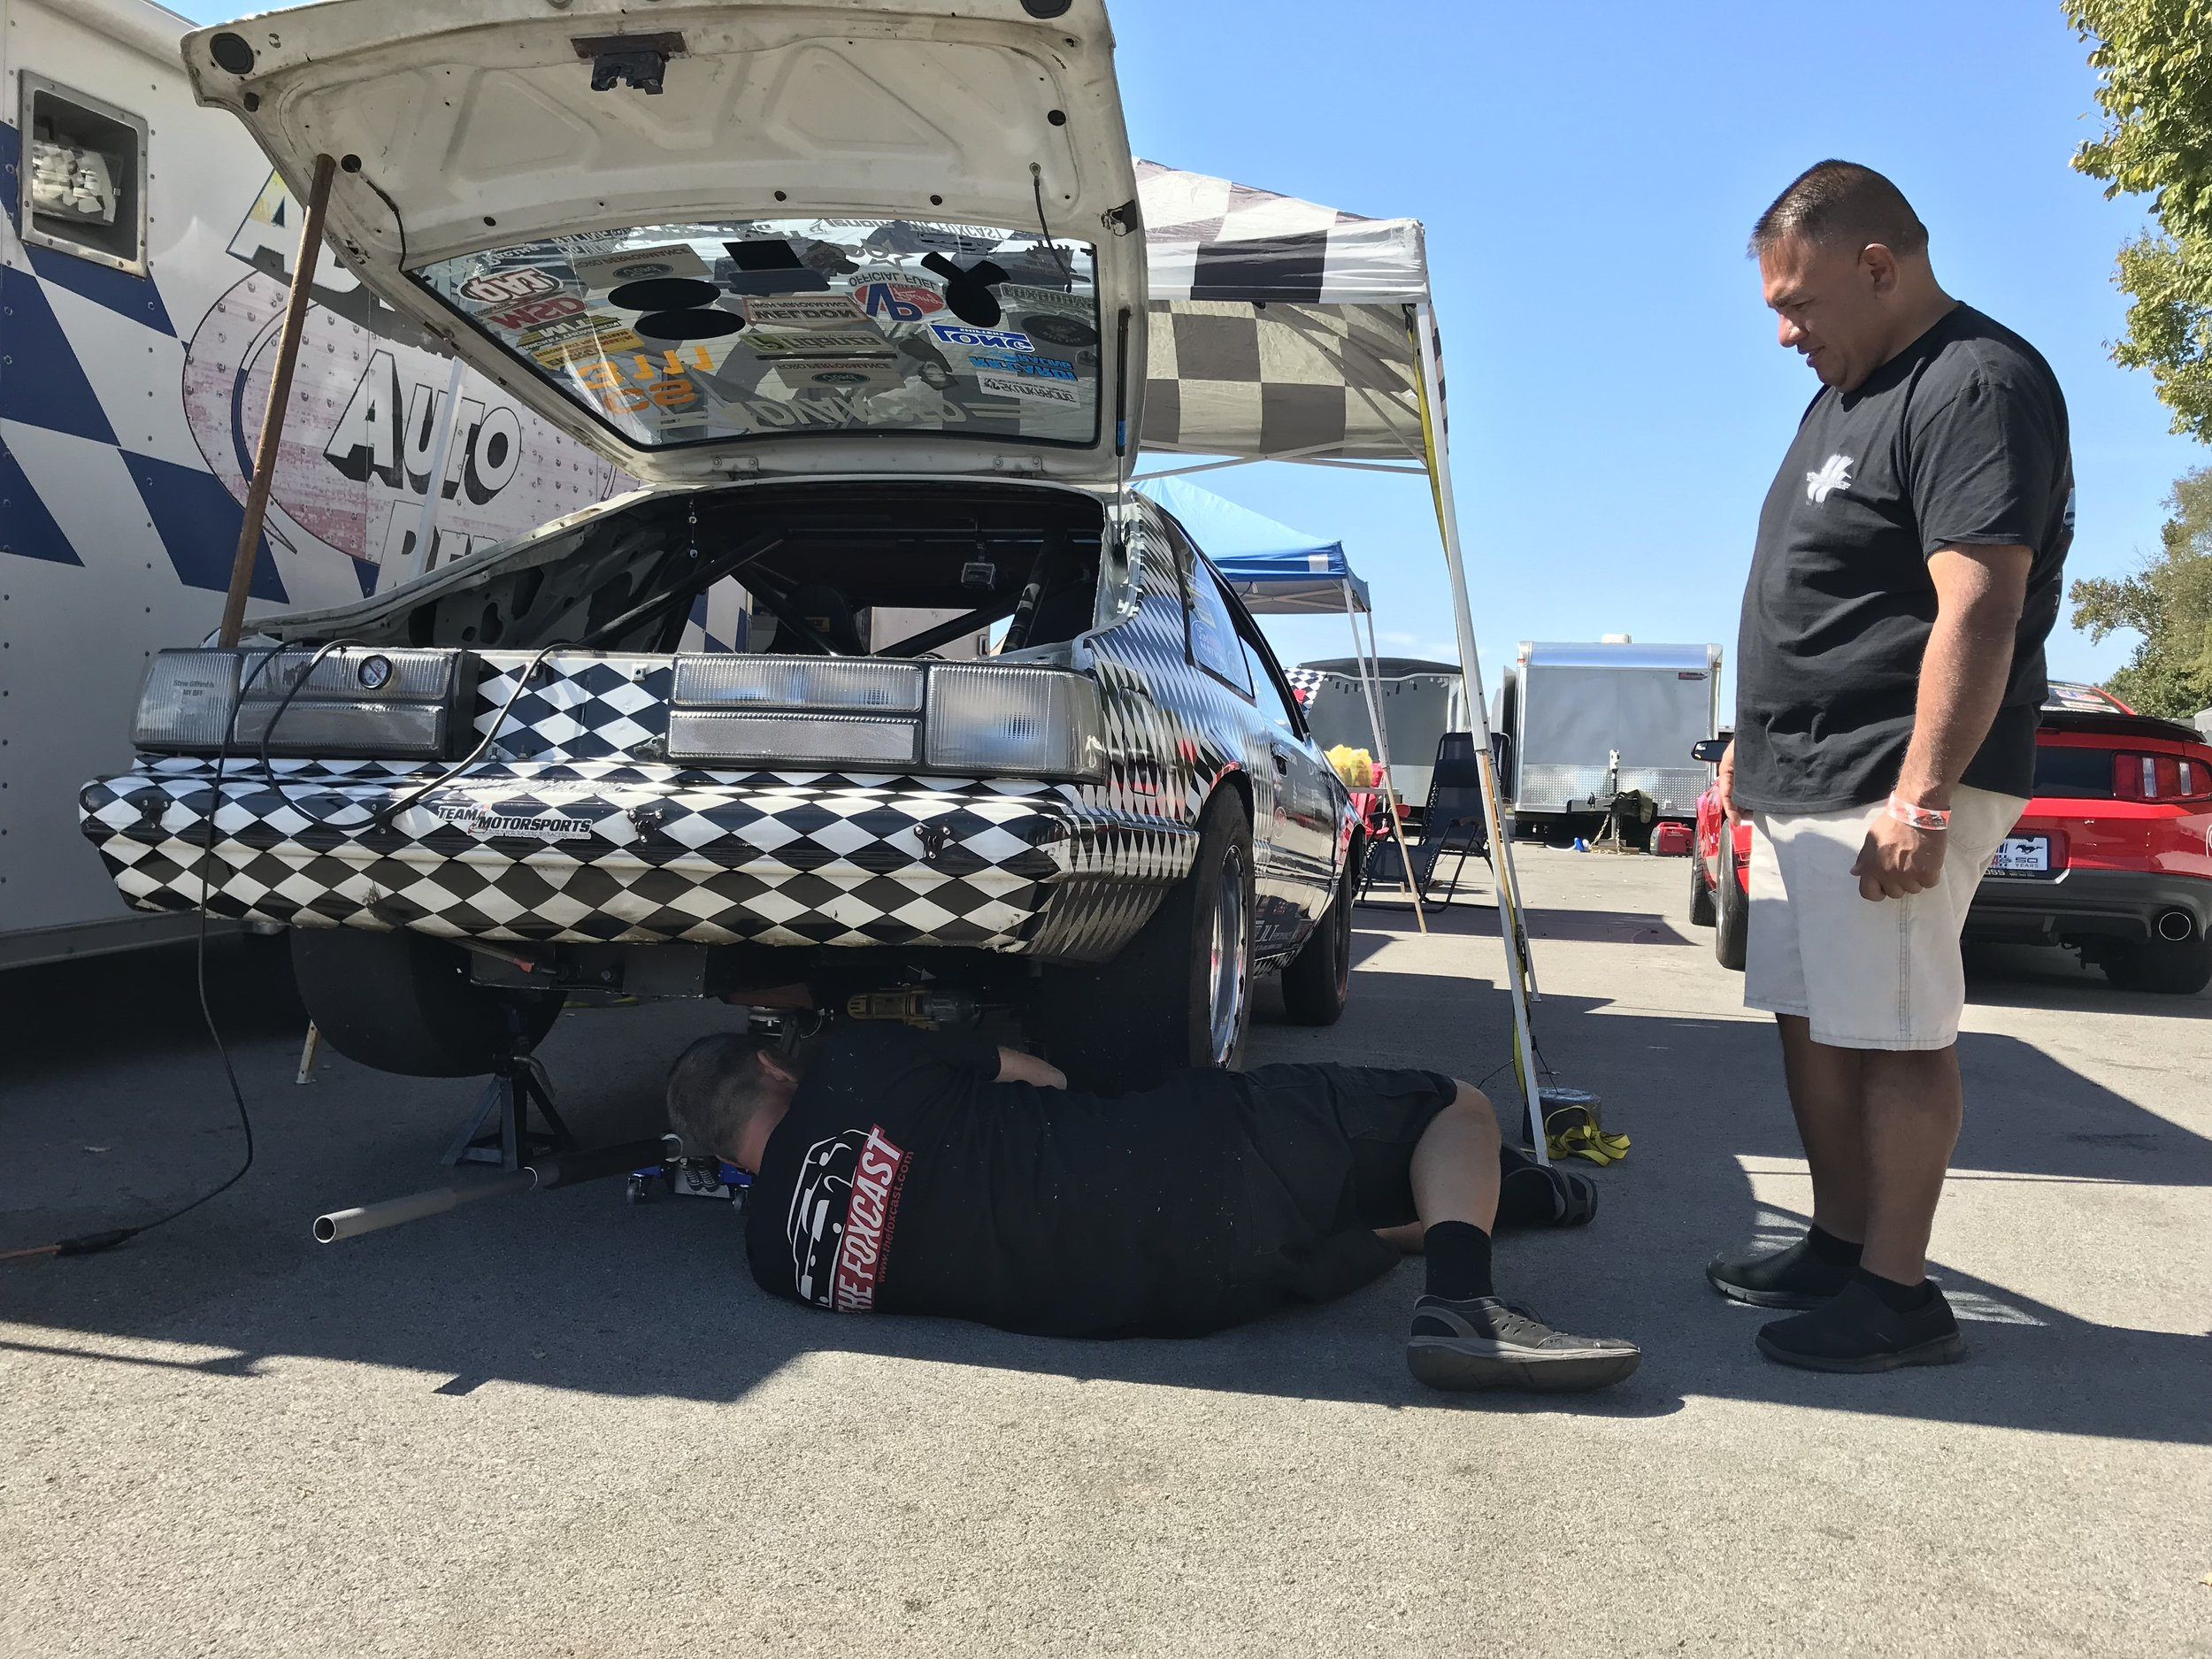 After pulling the trans twice for a bad clutch, and bad flywheel, CS driver Carlos Sobrino also found a blown rear shock.